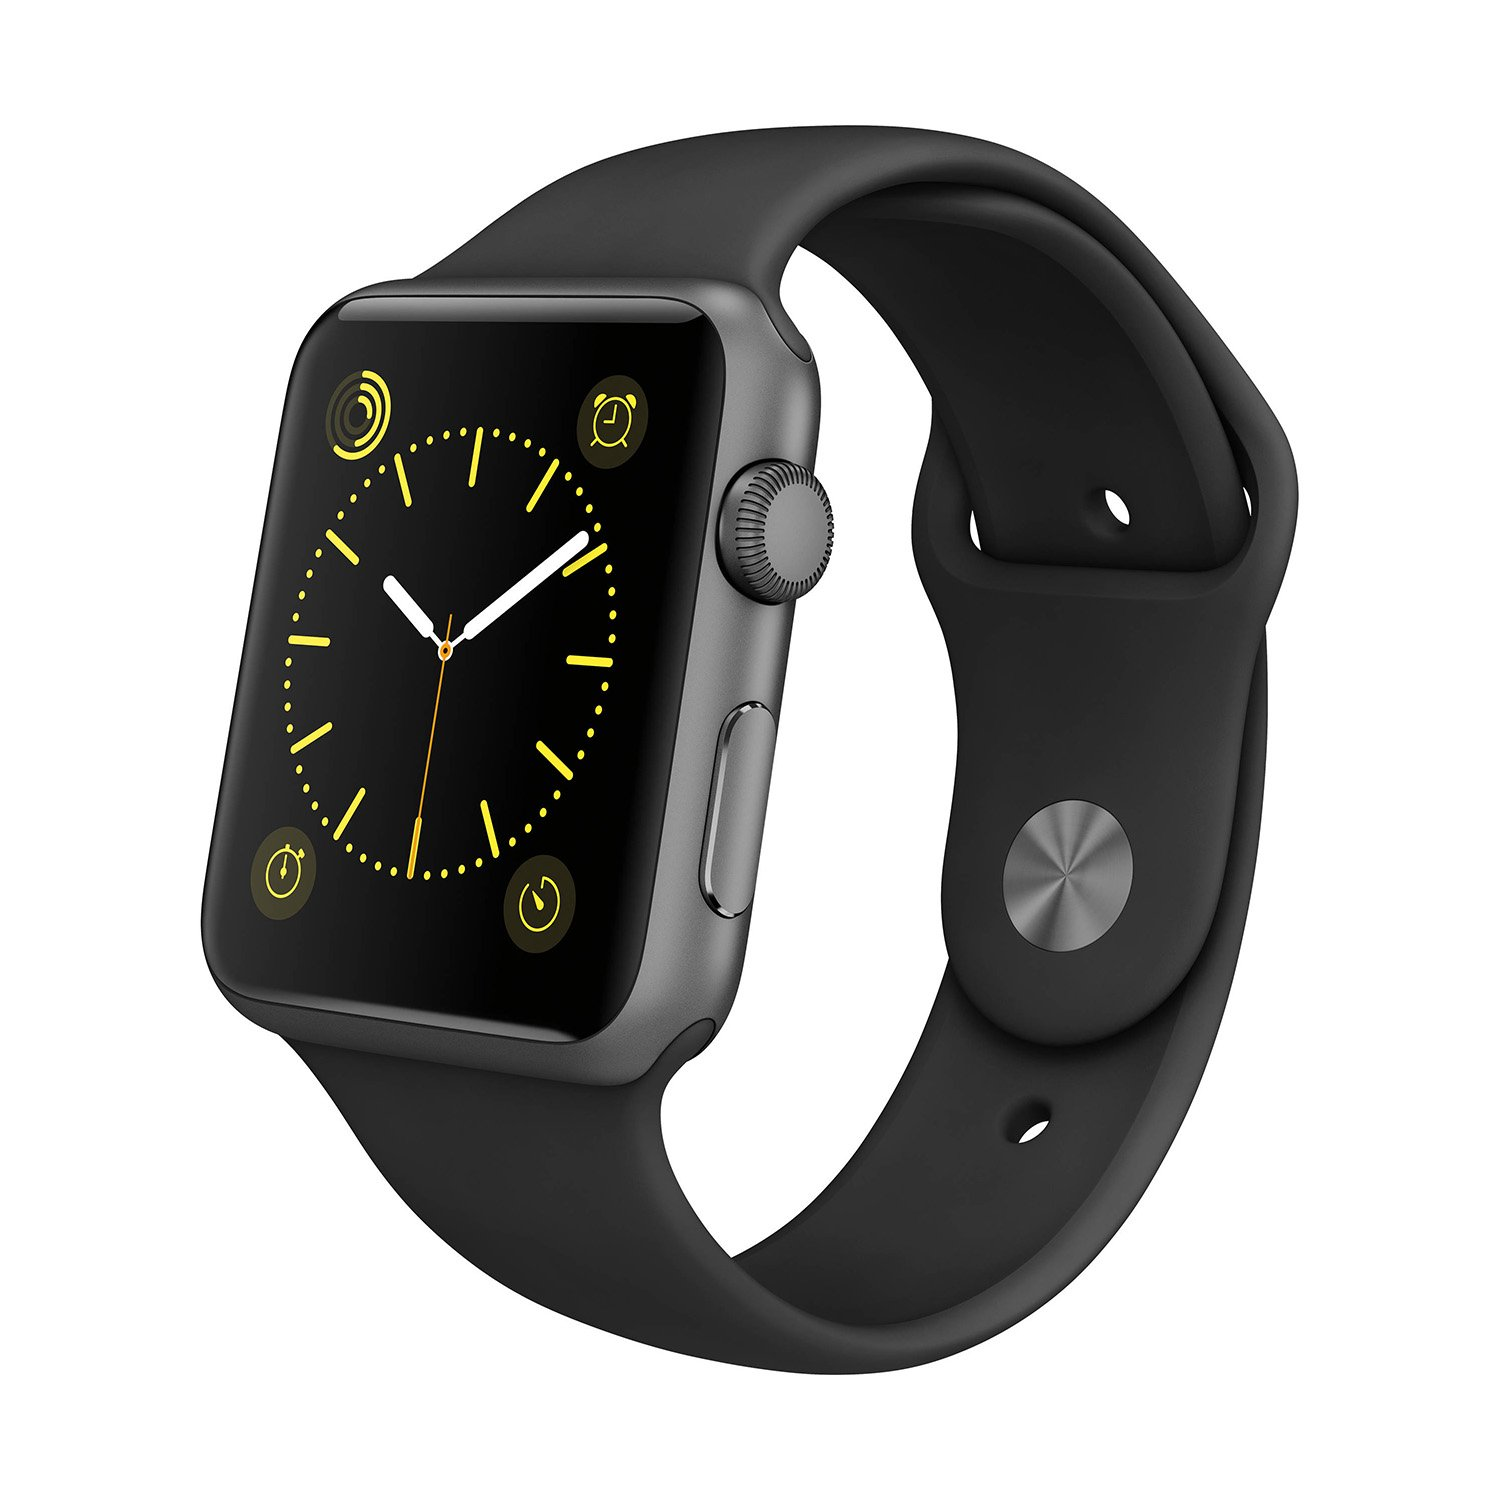 Apple Watch Sport 42mm with Space Gray Aluminum Case and Black Sport Band - MJ3T2LLA (Renewed) by Apple